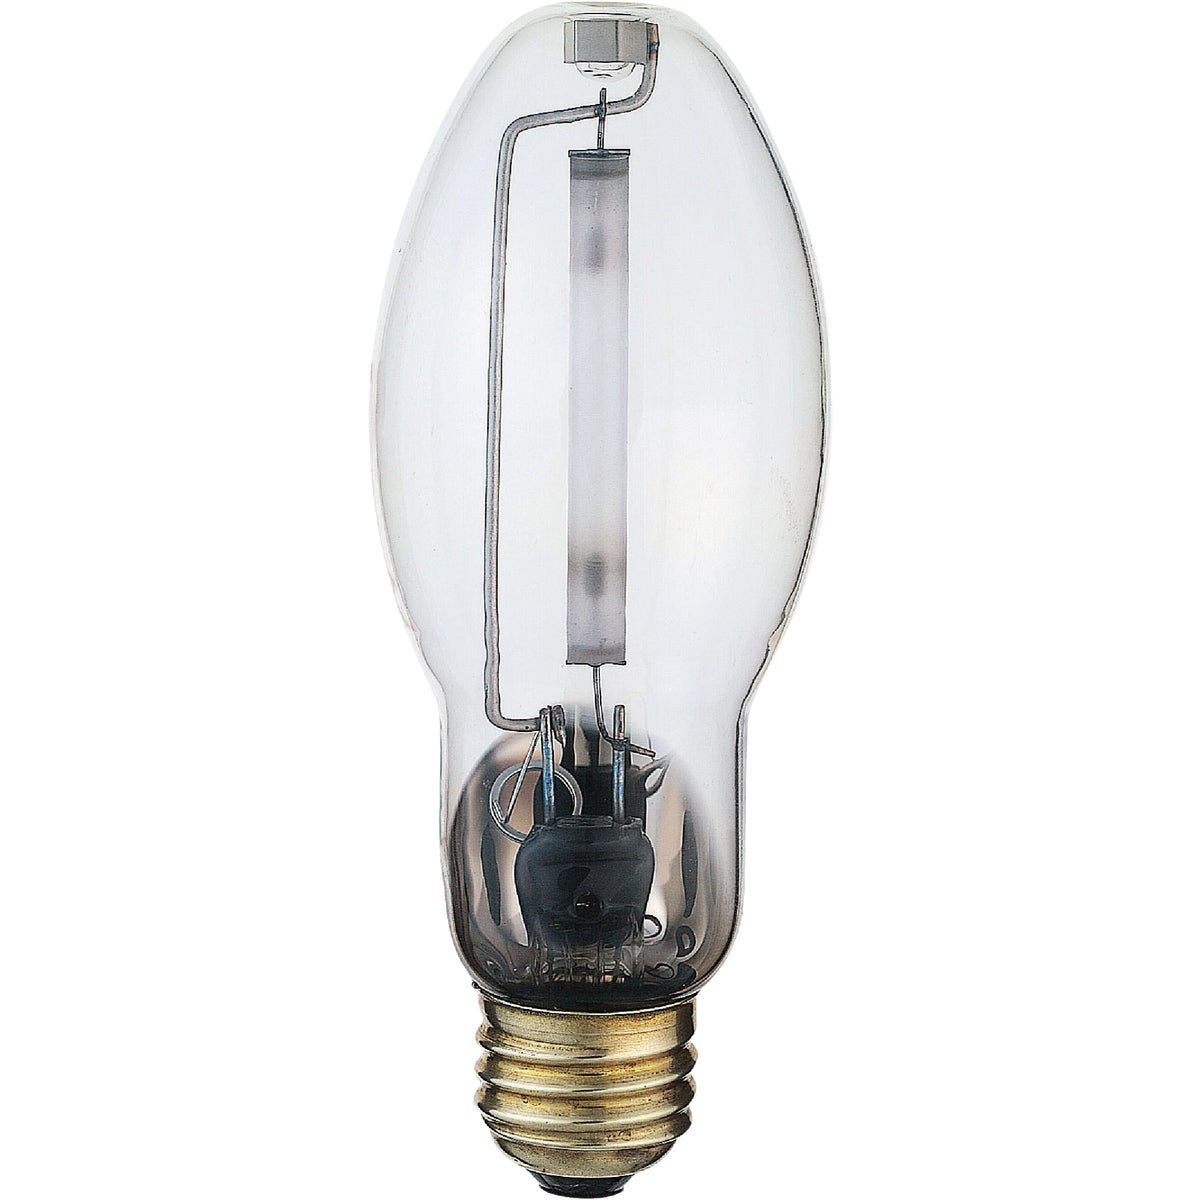 150W HP SODIUM BULB - 26424 by G E Lighting Incom